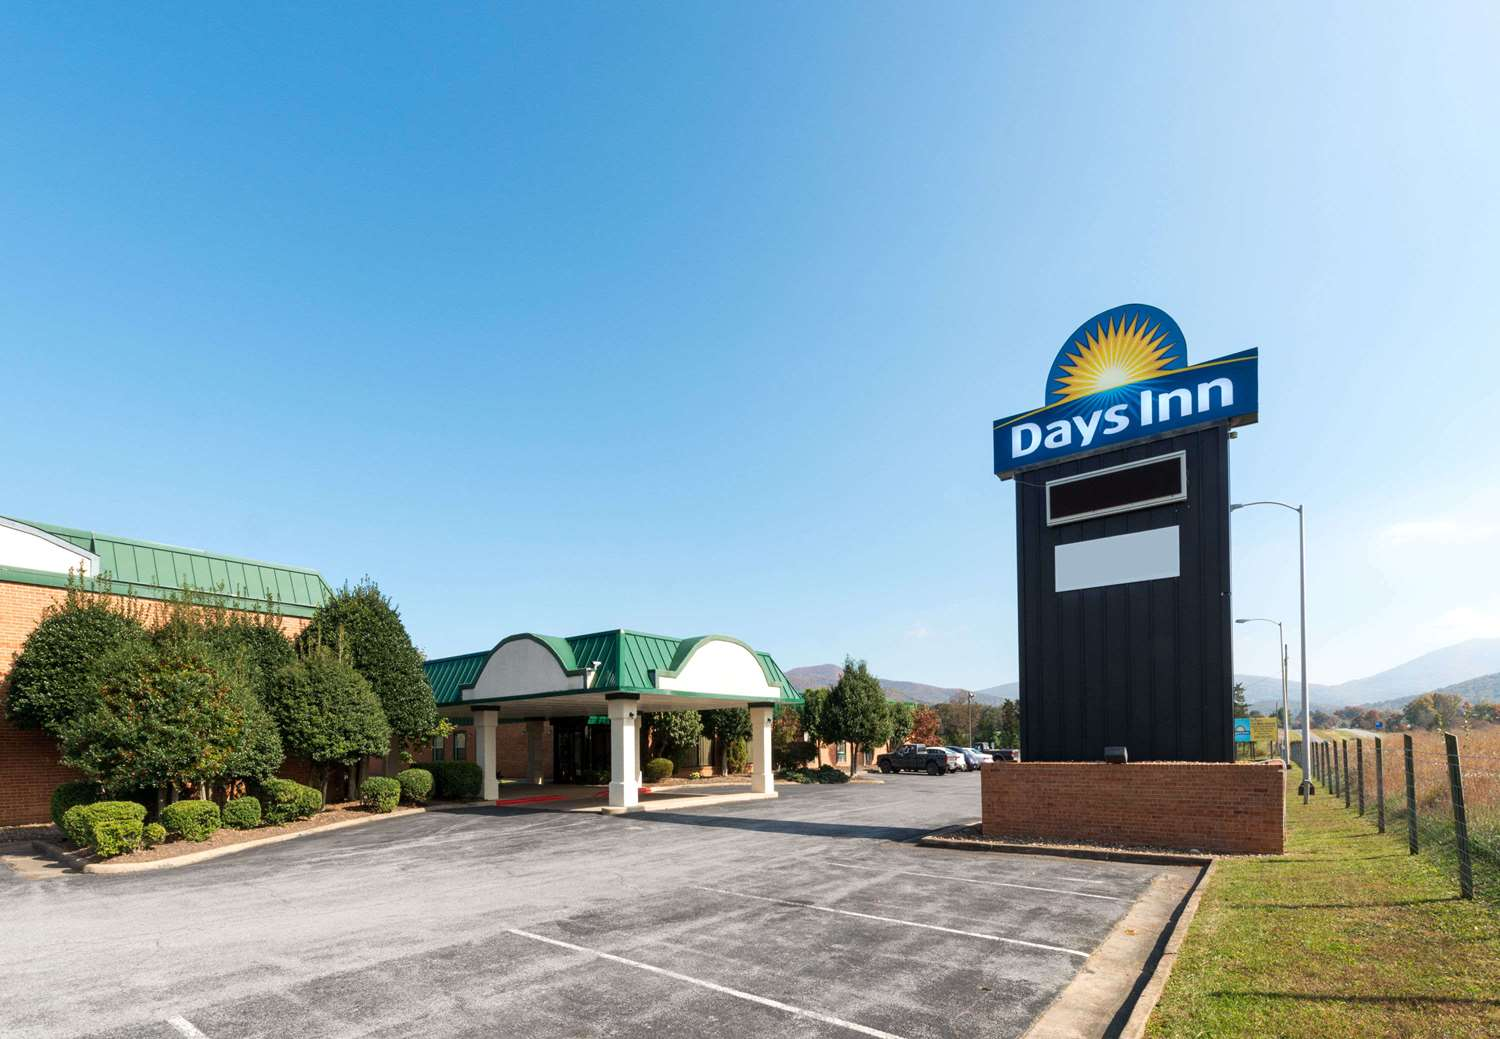 Days Inn Luray